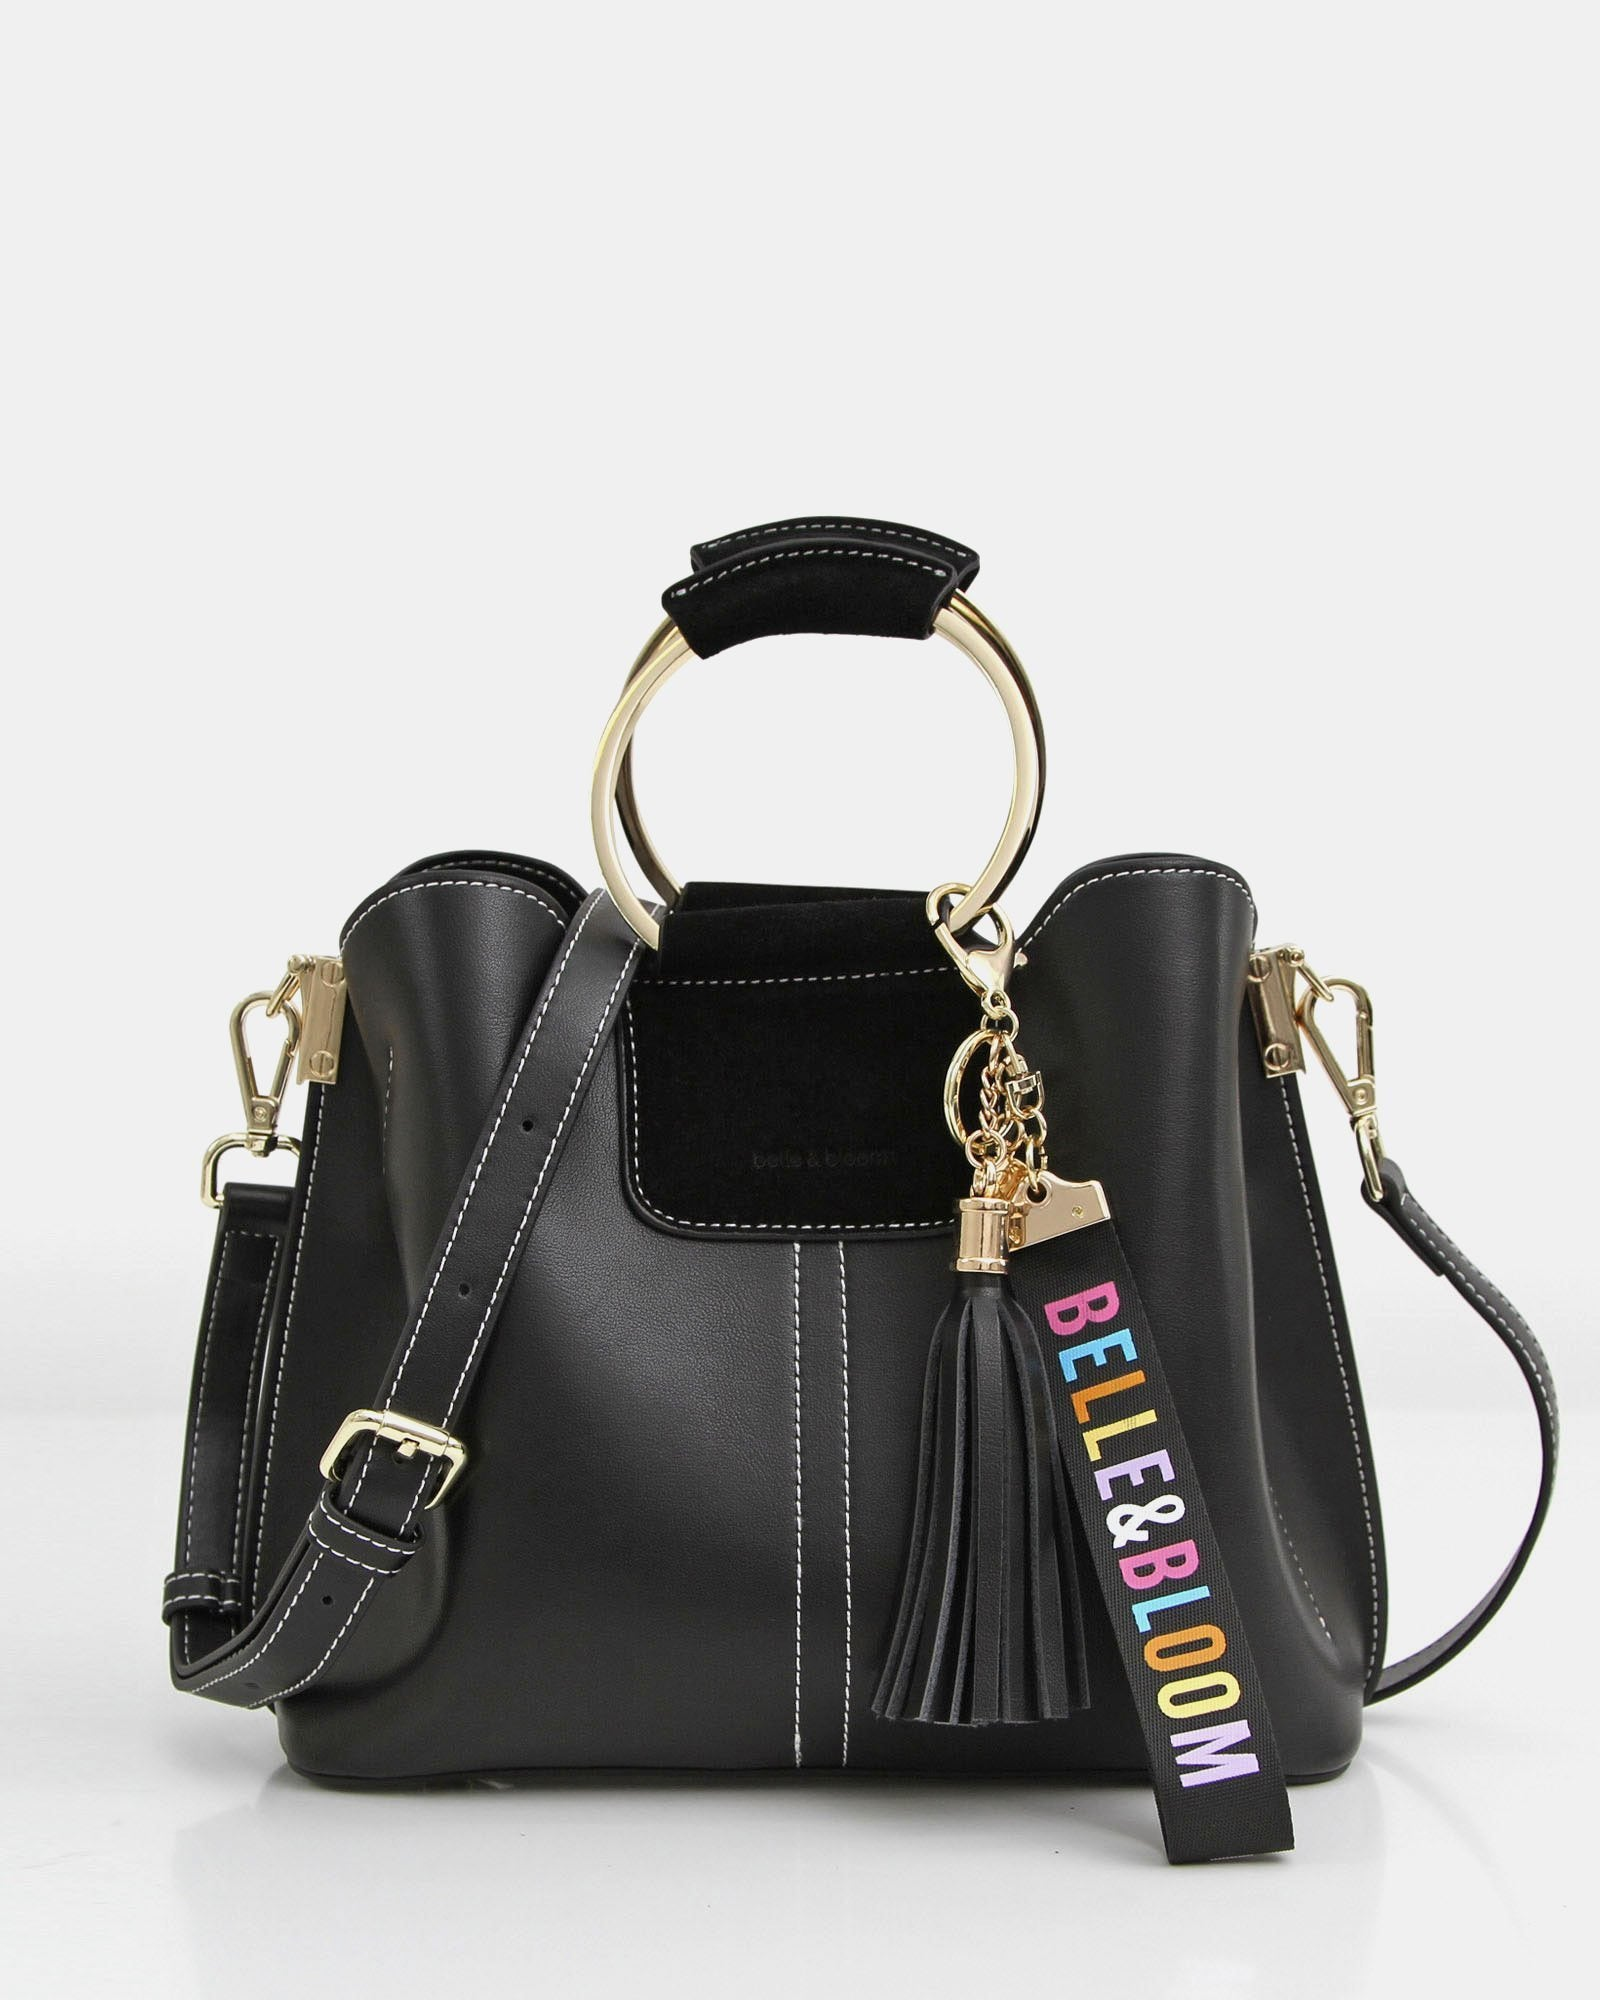 Twilight Leather Cross-Body Bag - Black